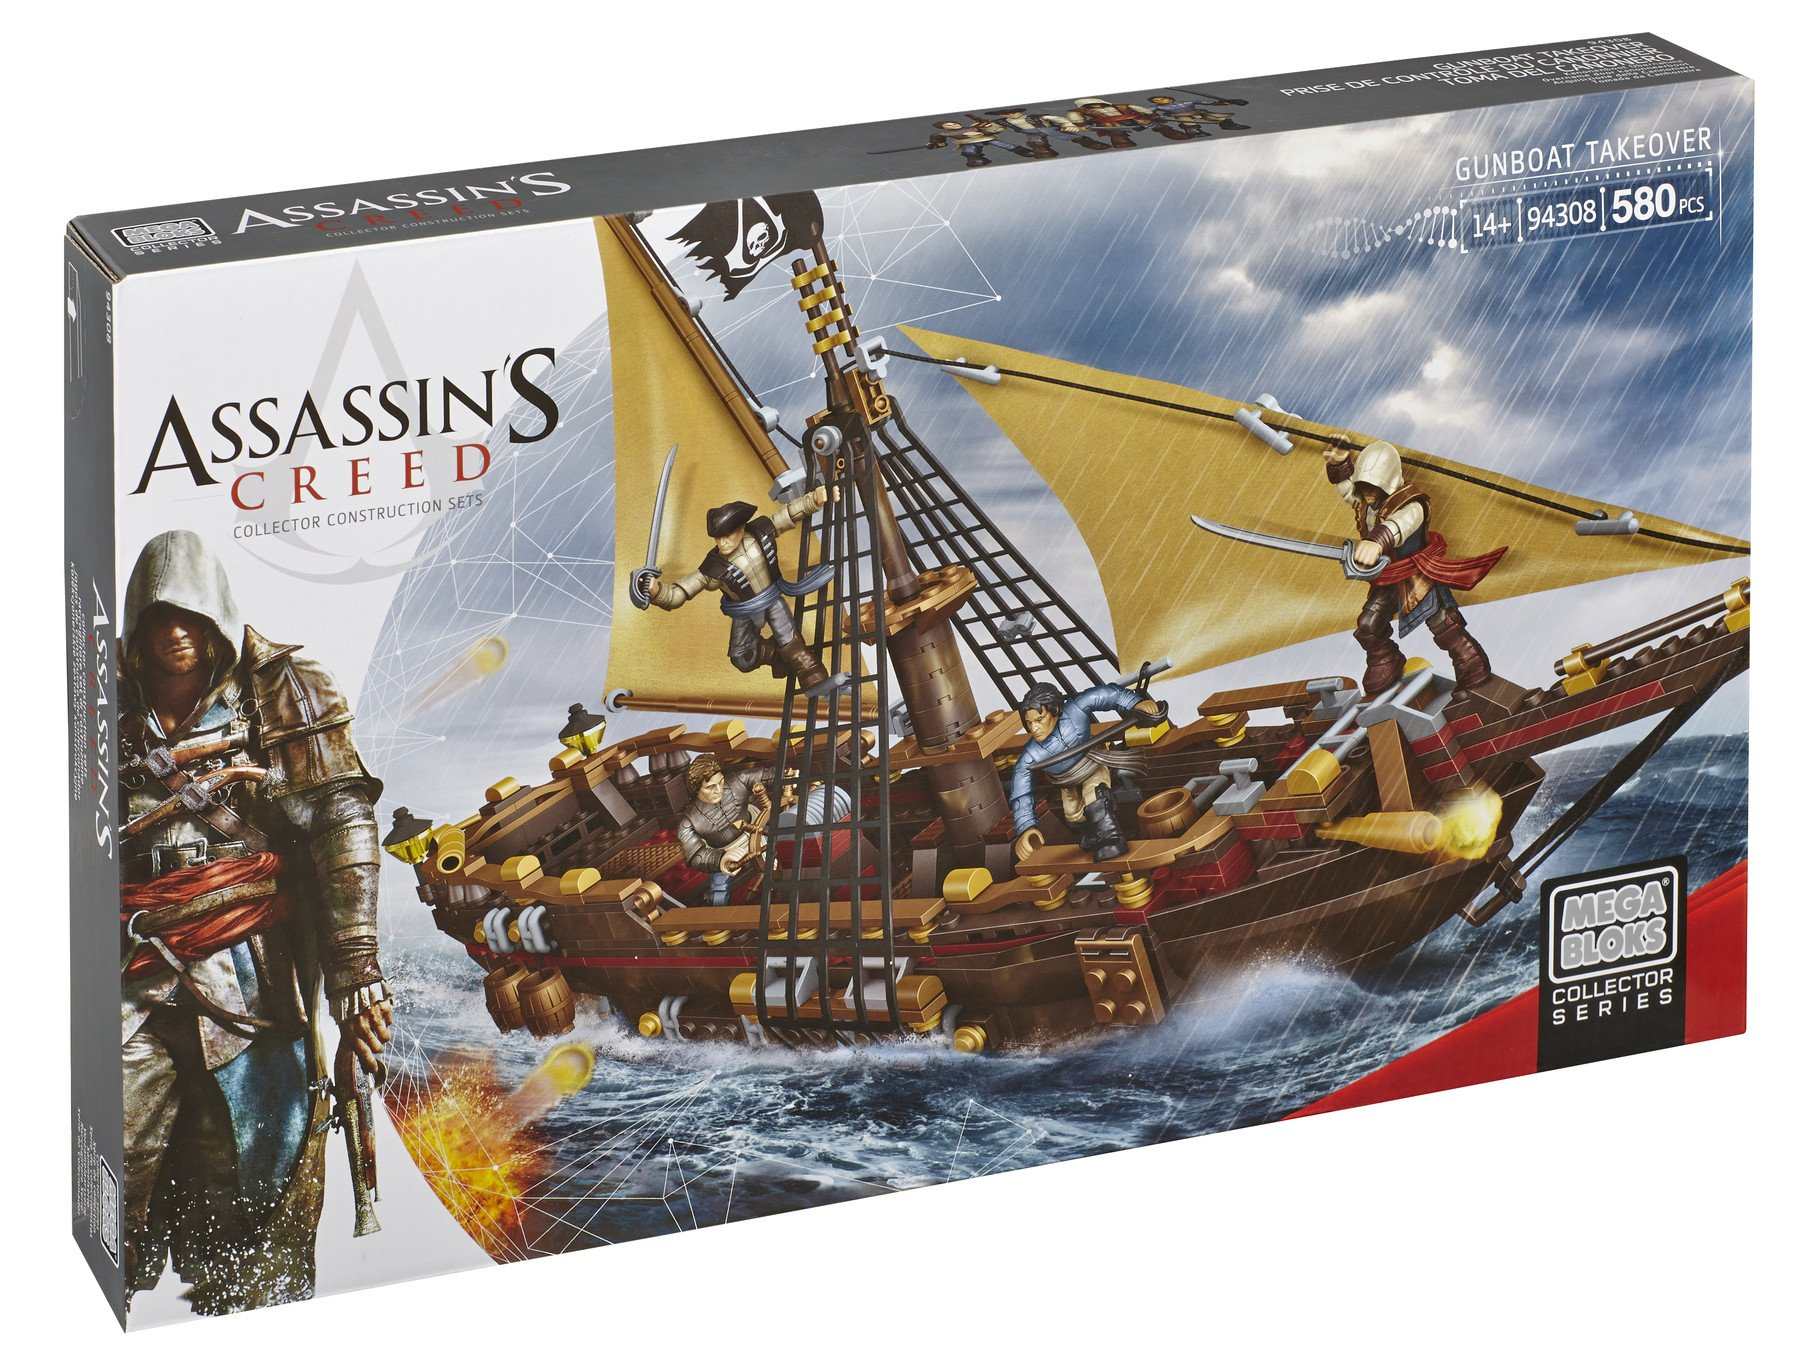 Mega Bloks Assassin's Creed Gunboat Takeover 14